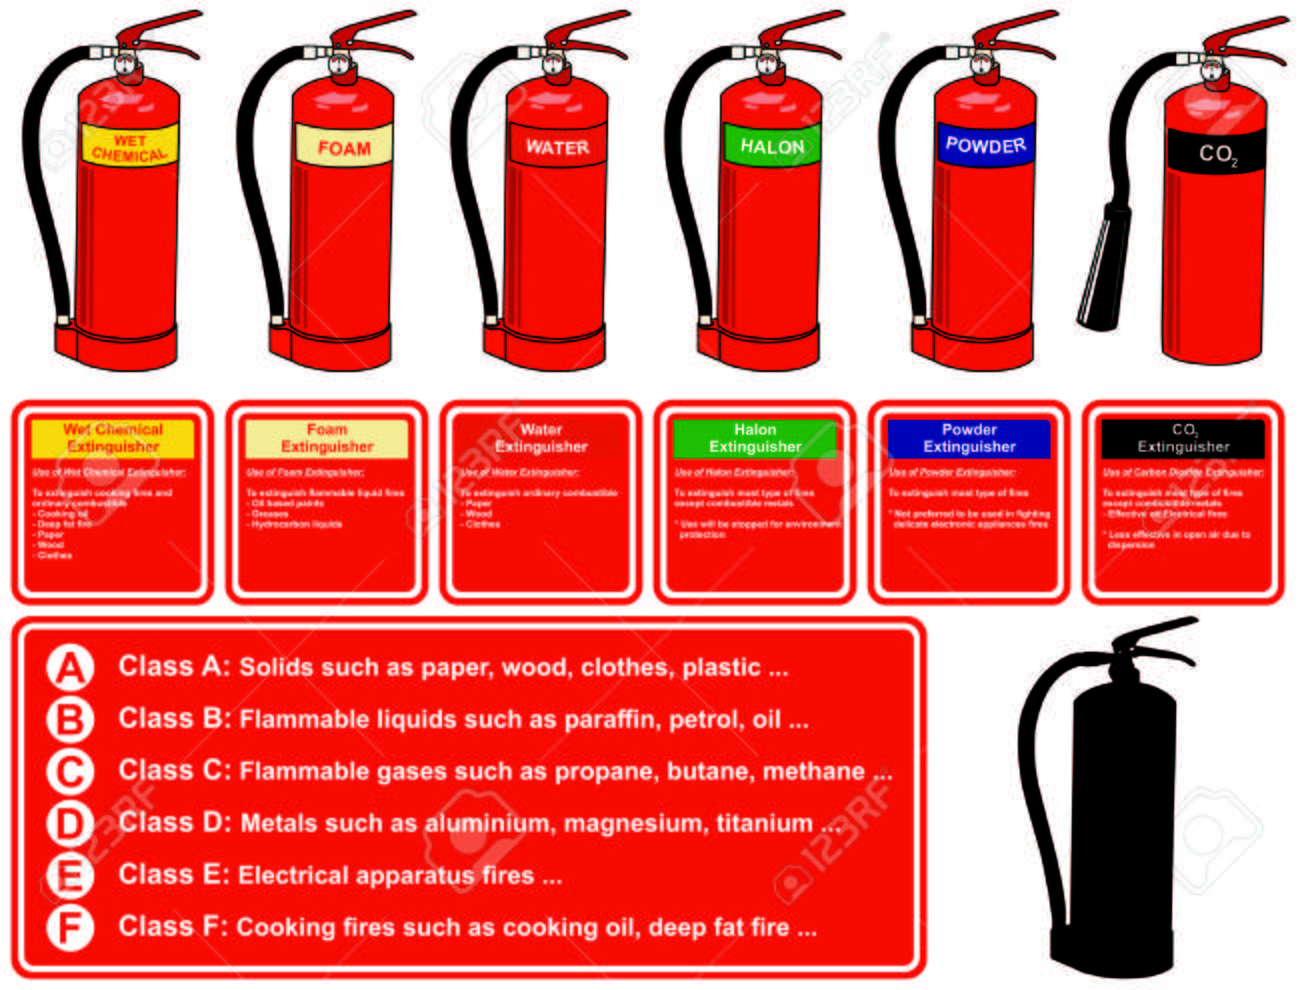 Fire Extinguisher Different Types for building facility safety to protect employees people flames wet chemical foam water halon dry powder co2 carbon dioxide saves your life fire class table - 72098114